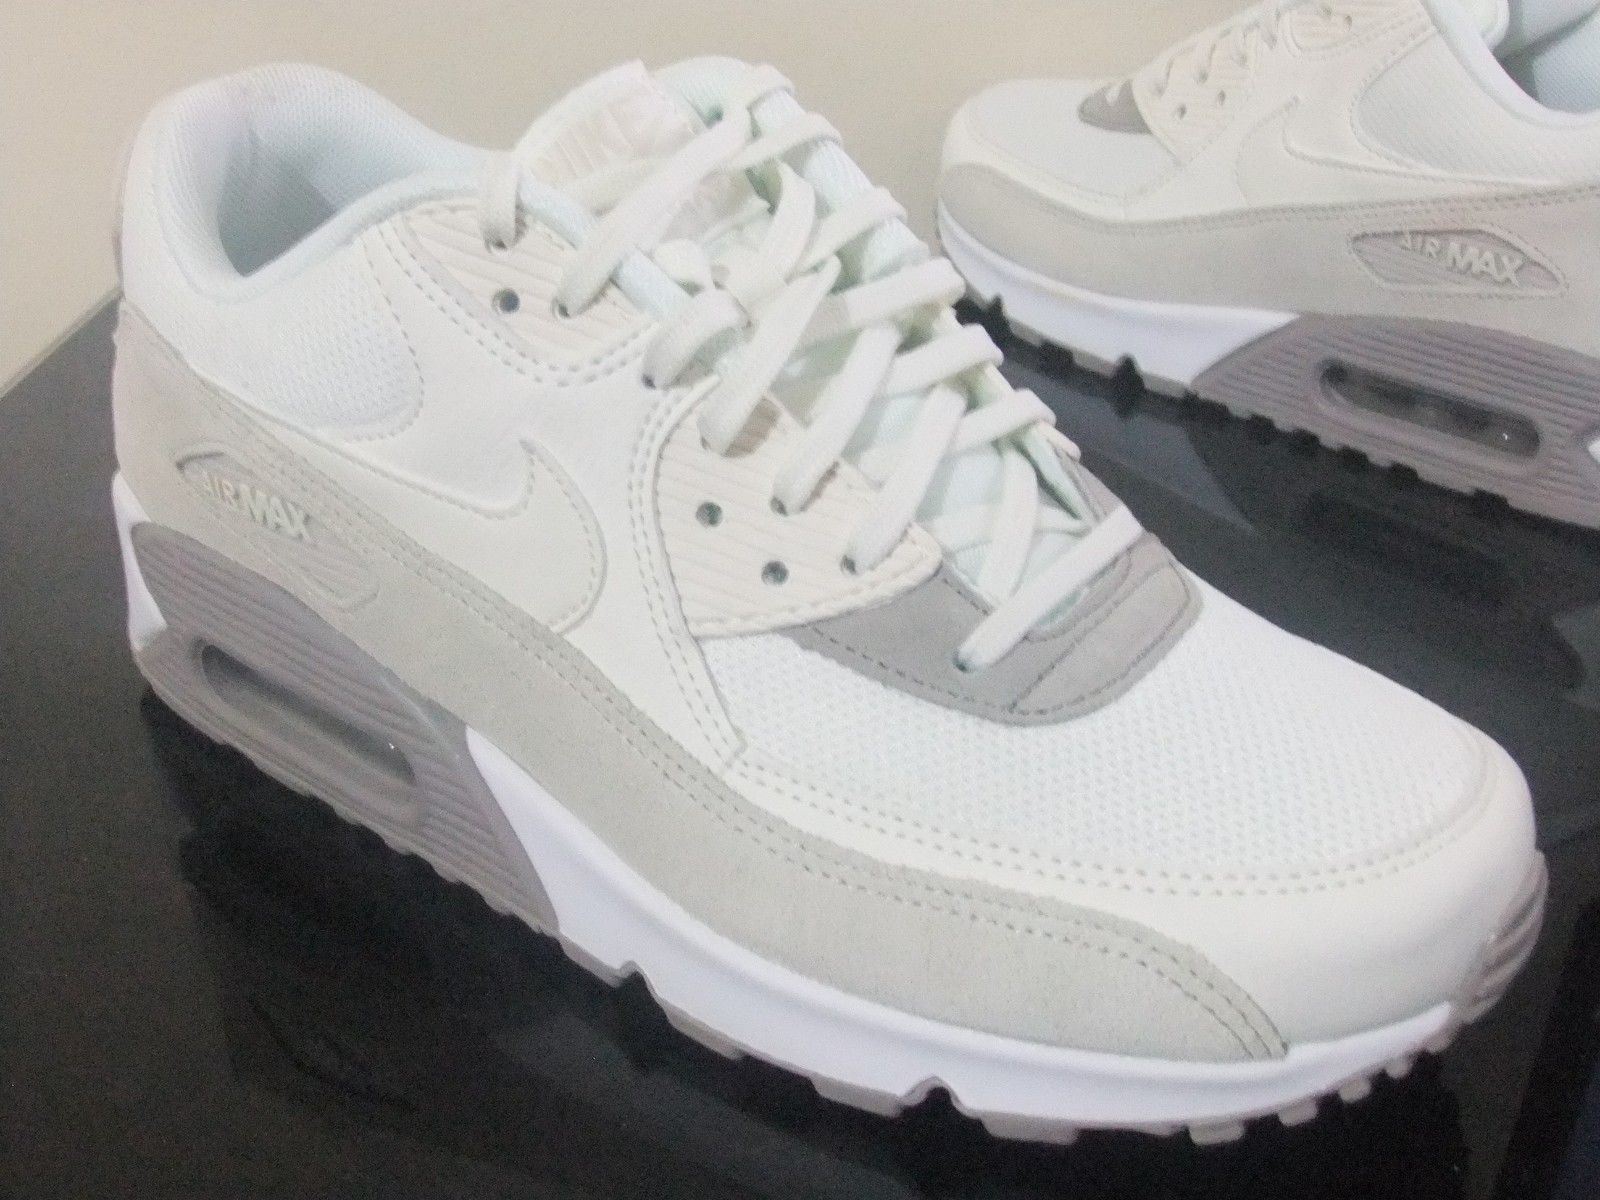 2a616ad0b1776 WOMEN'S NIKE AIR MAX 90 TRAINERS UK SIZE 6 325213 129 | Sneakers ...